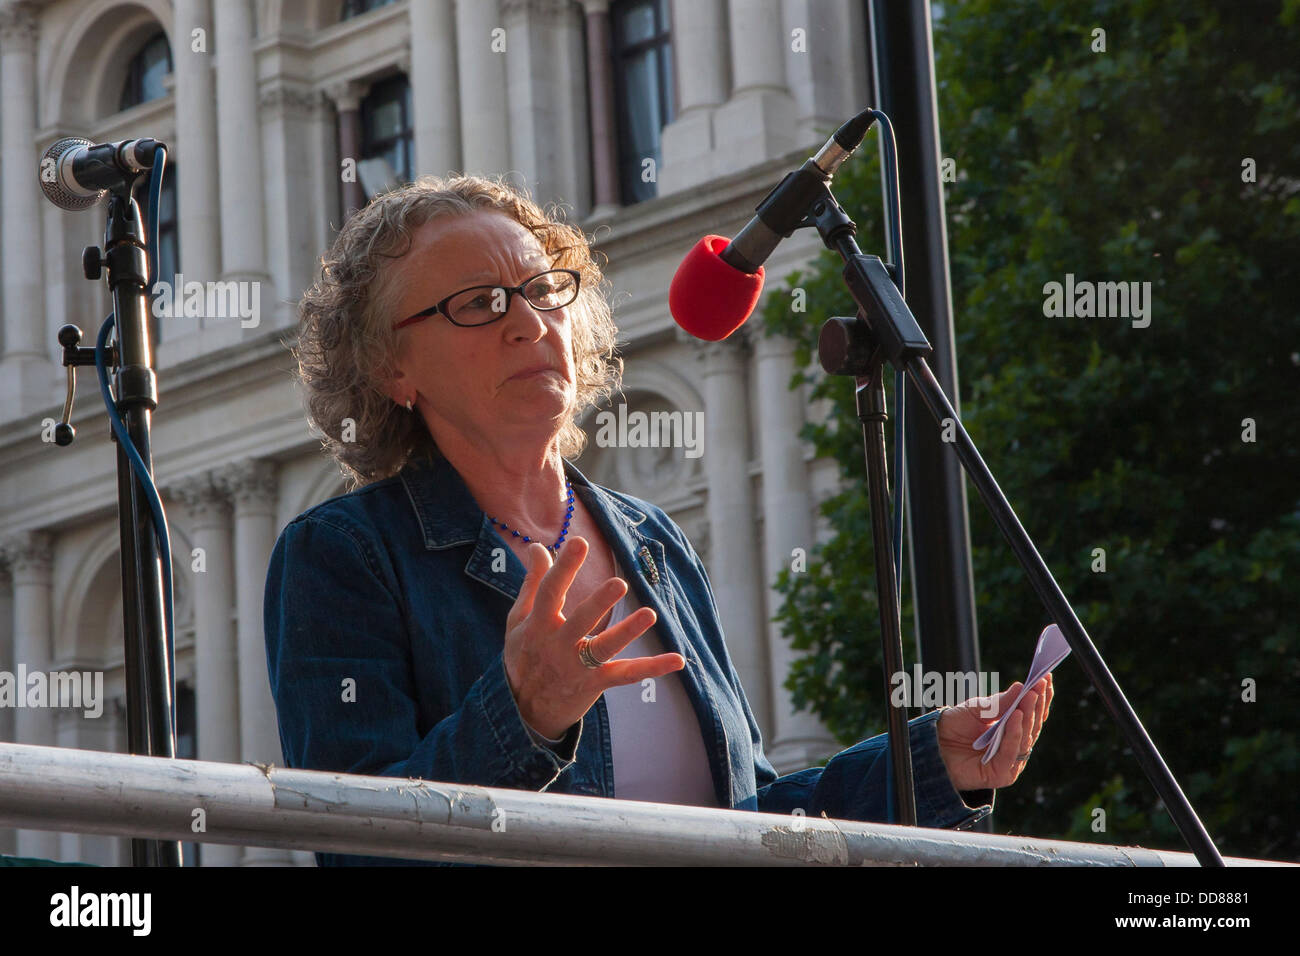 London, UK. 28th Aug, 2013. Jenny Jones of the Green Party speaks to demonstrators during a protest against possible - Stock Image